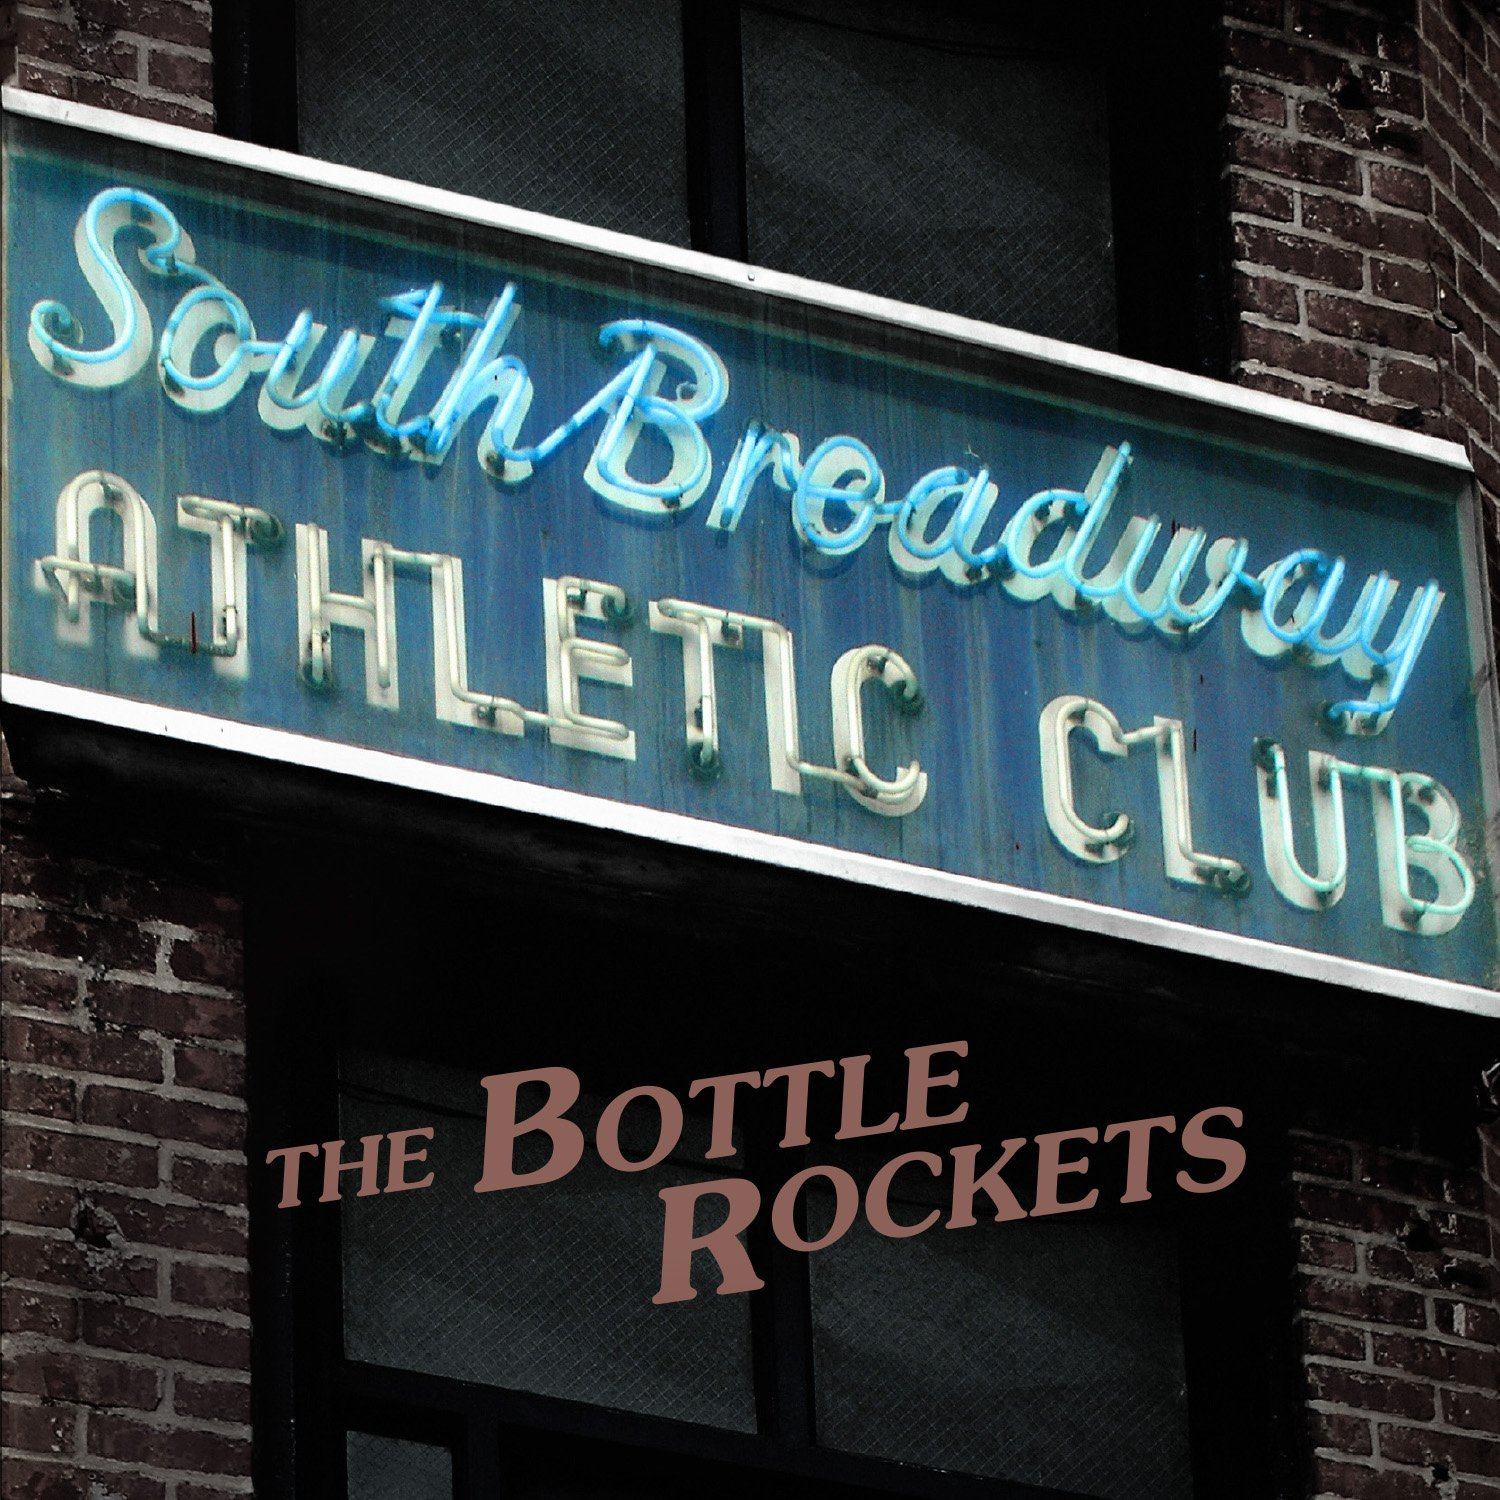 The Bottle Rockets: South Broadway Athletic Club [Album Review]